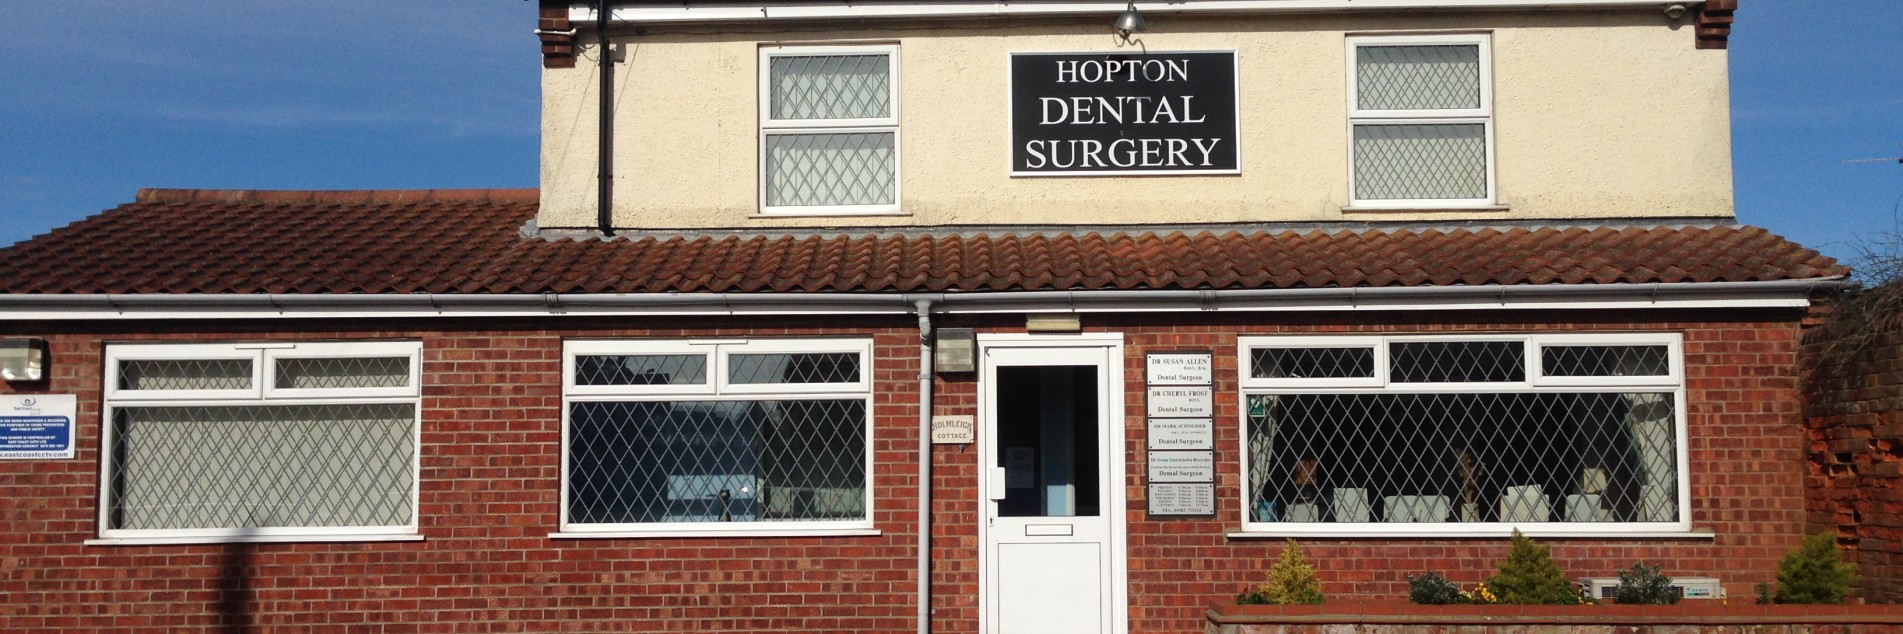 Hopton Dental Surgery